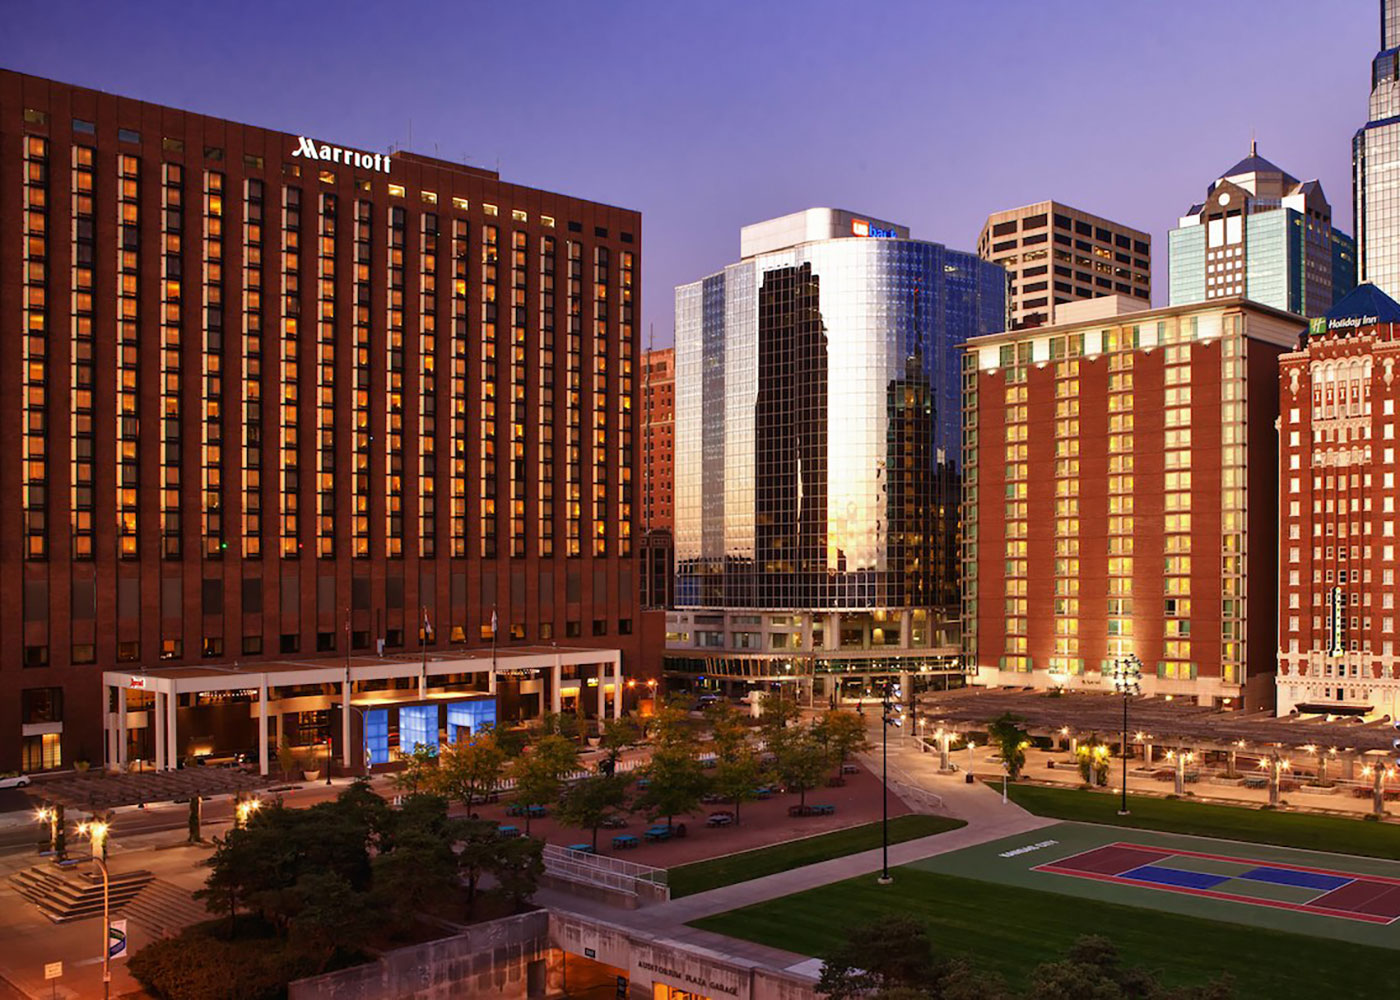 Kansas City Downtown Marriott